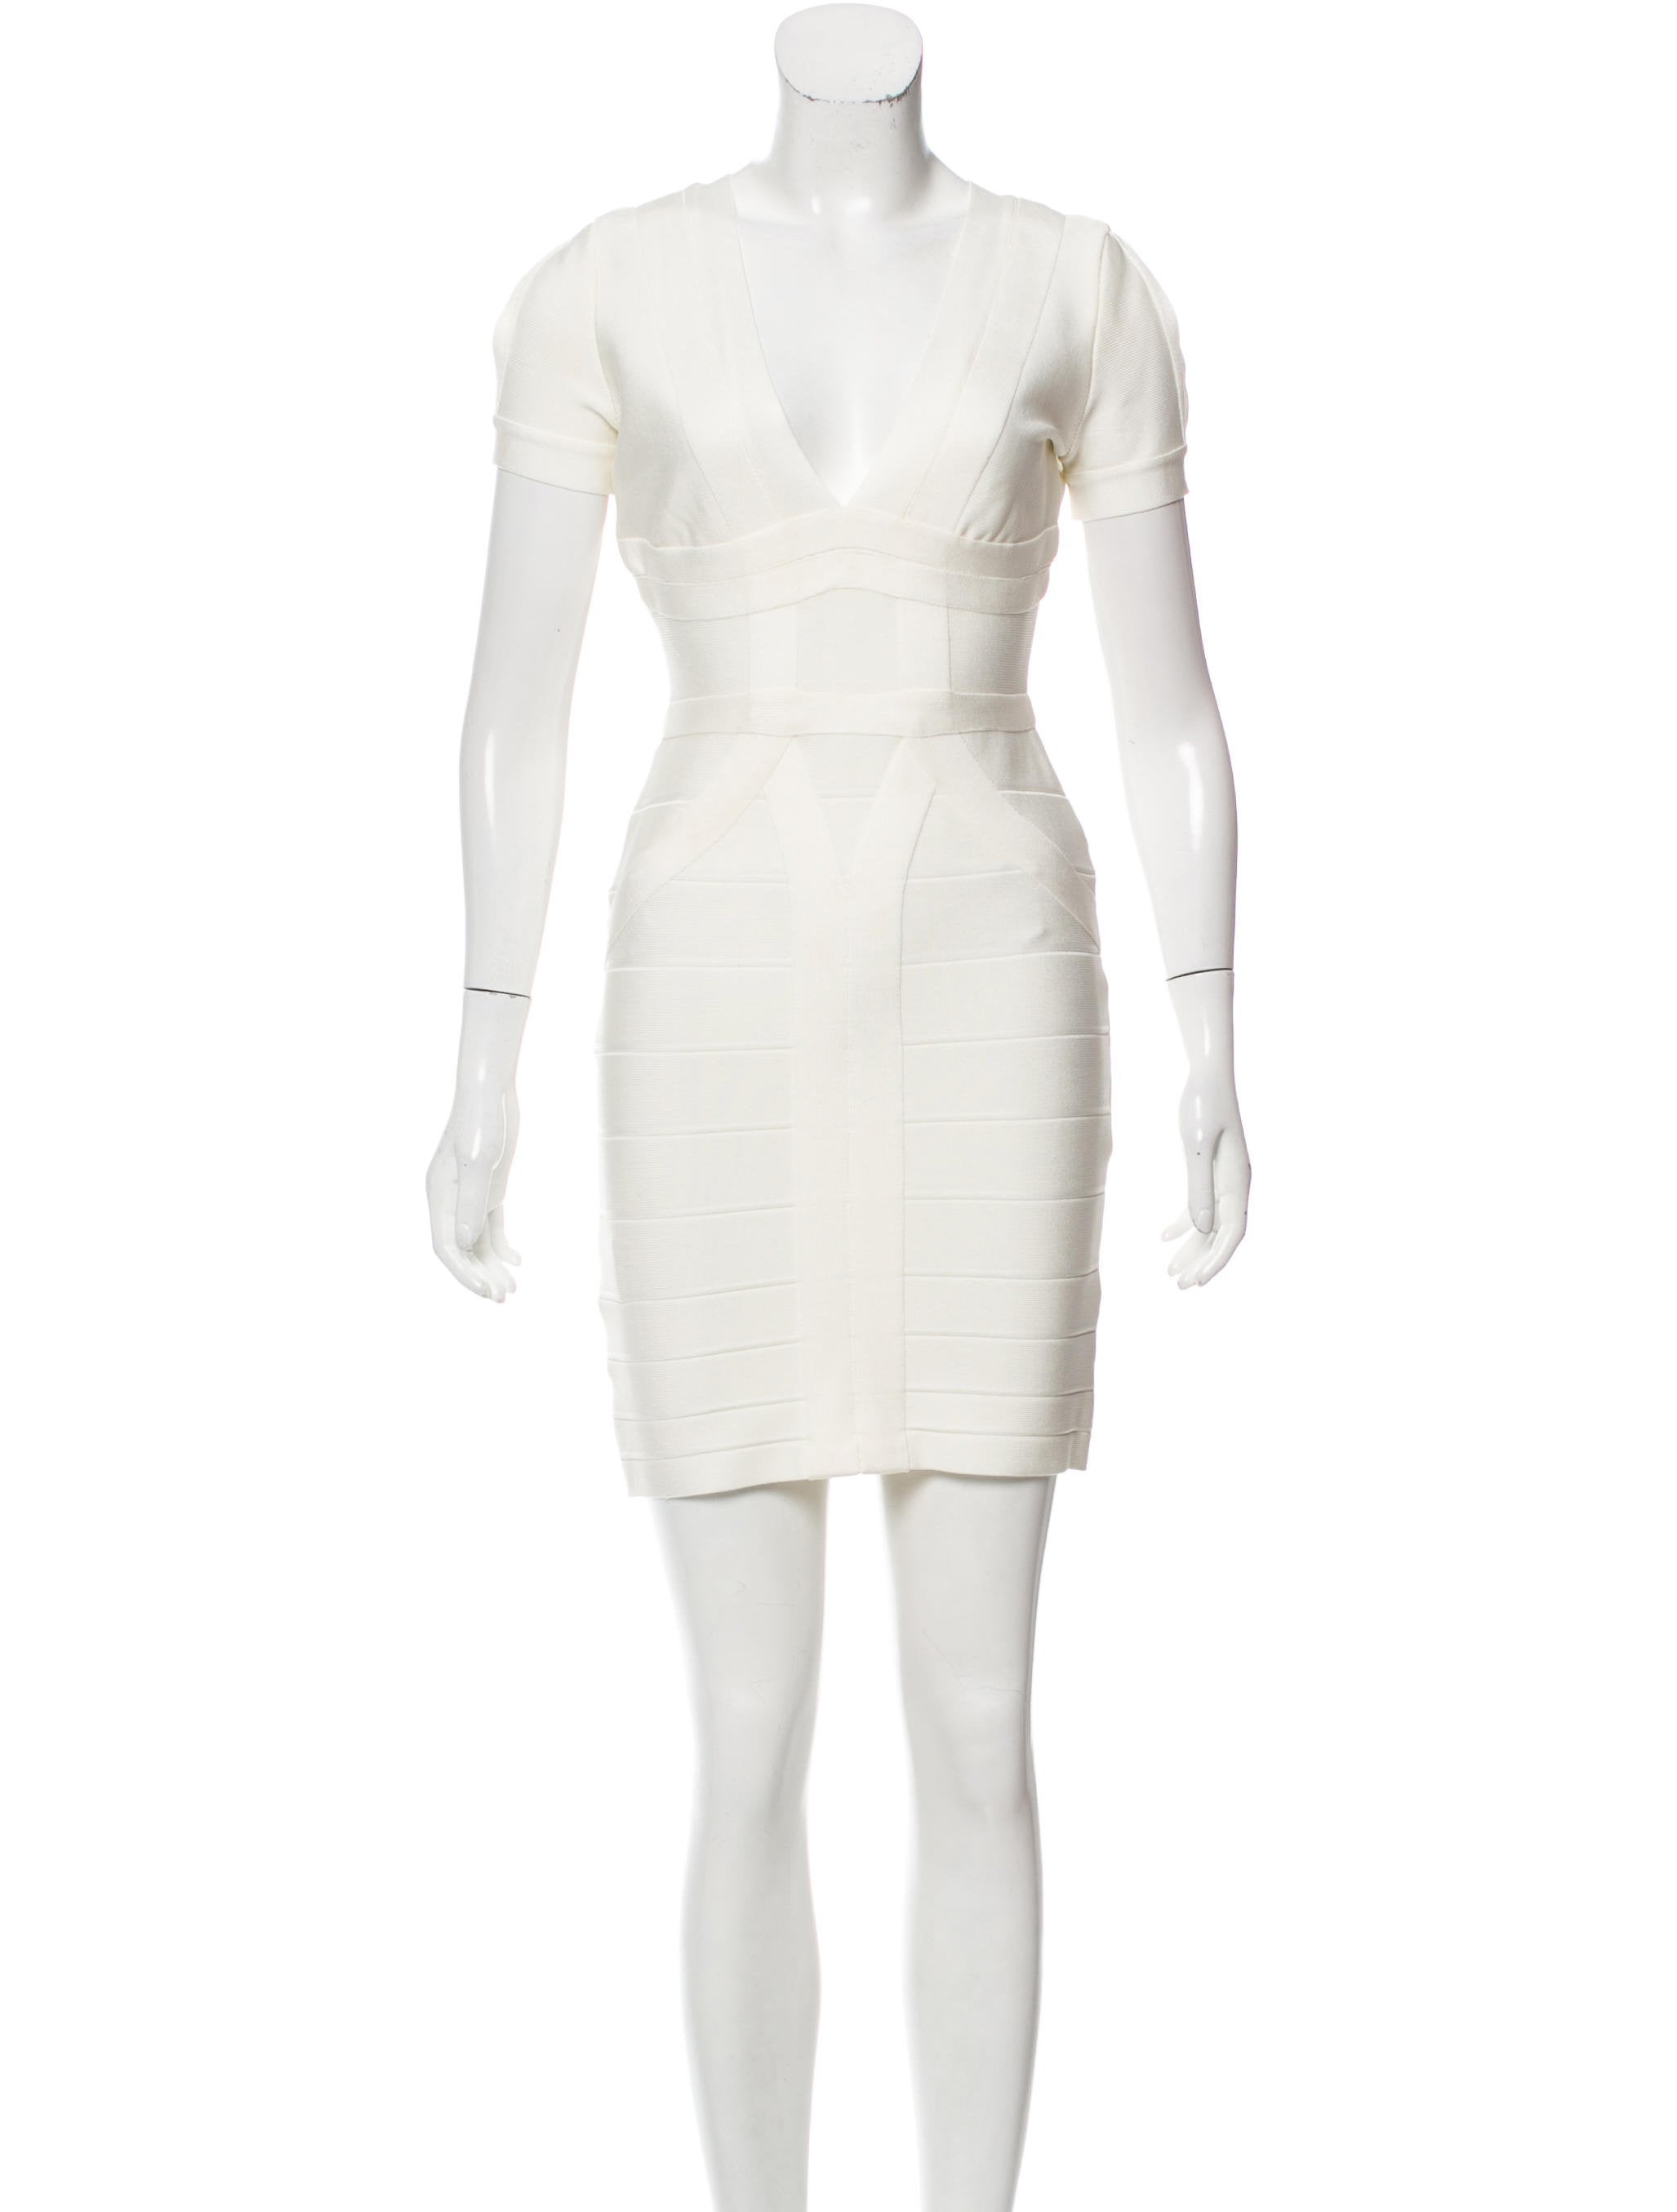 223bb204c346 Herve Leger Wynn Bandage Dress w  Tags - Clothing - HEV33020